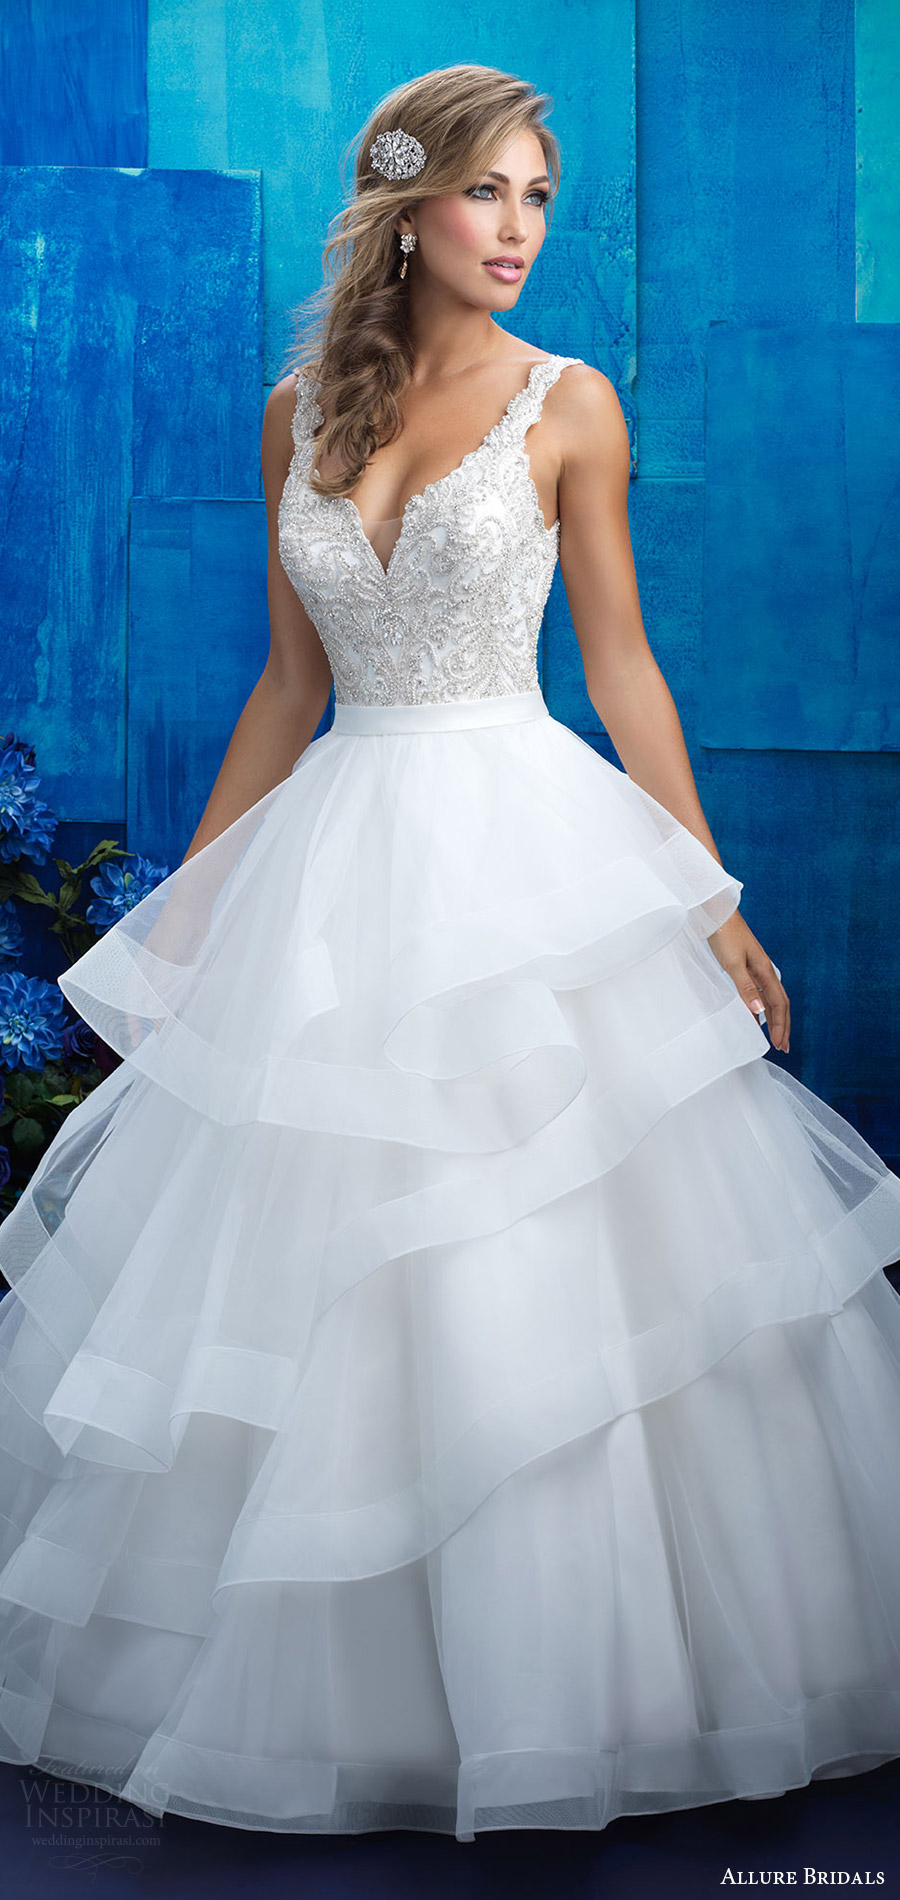 Awesome Betsey Johnson Wedding Gowns Image - All Wedding Dresses ...